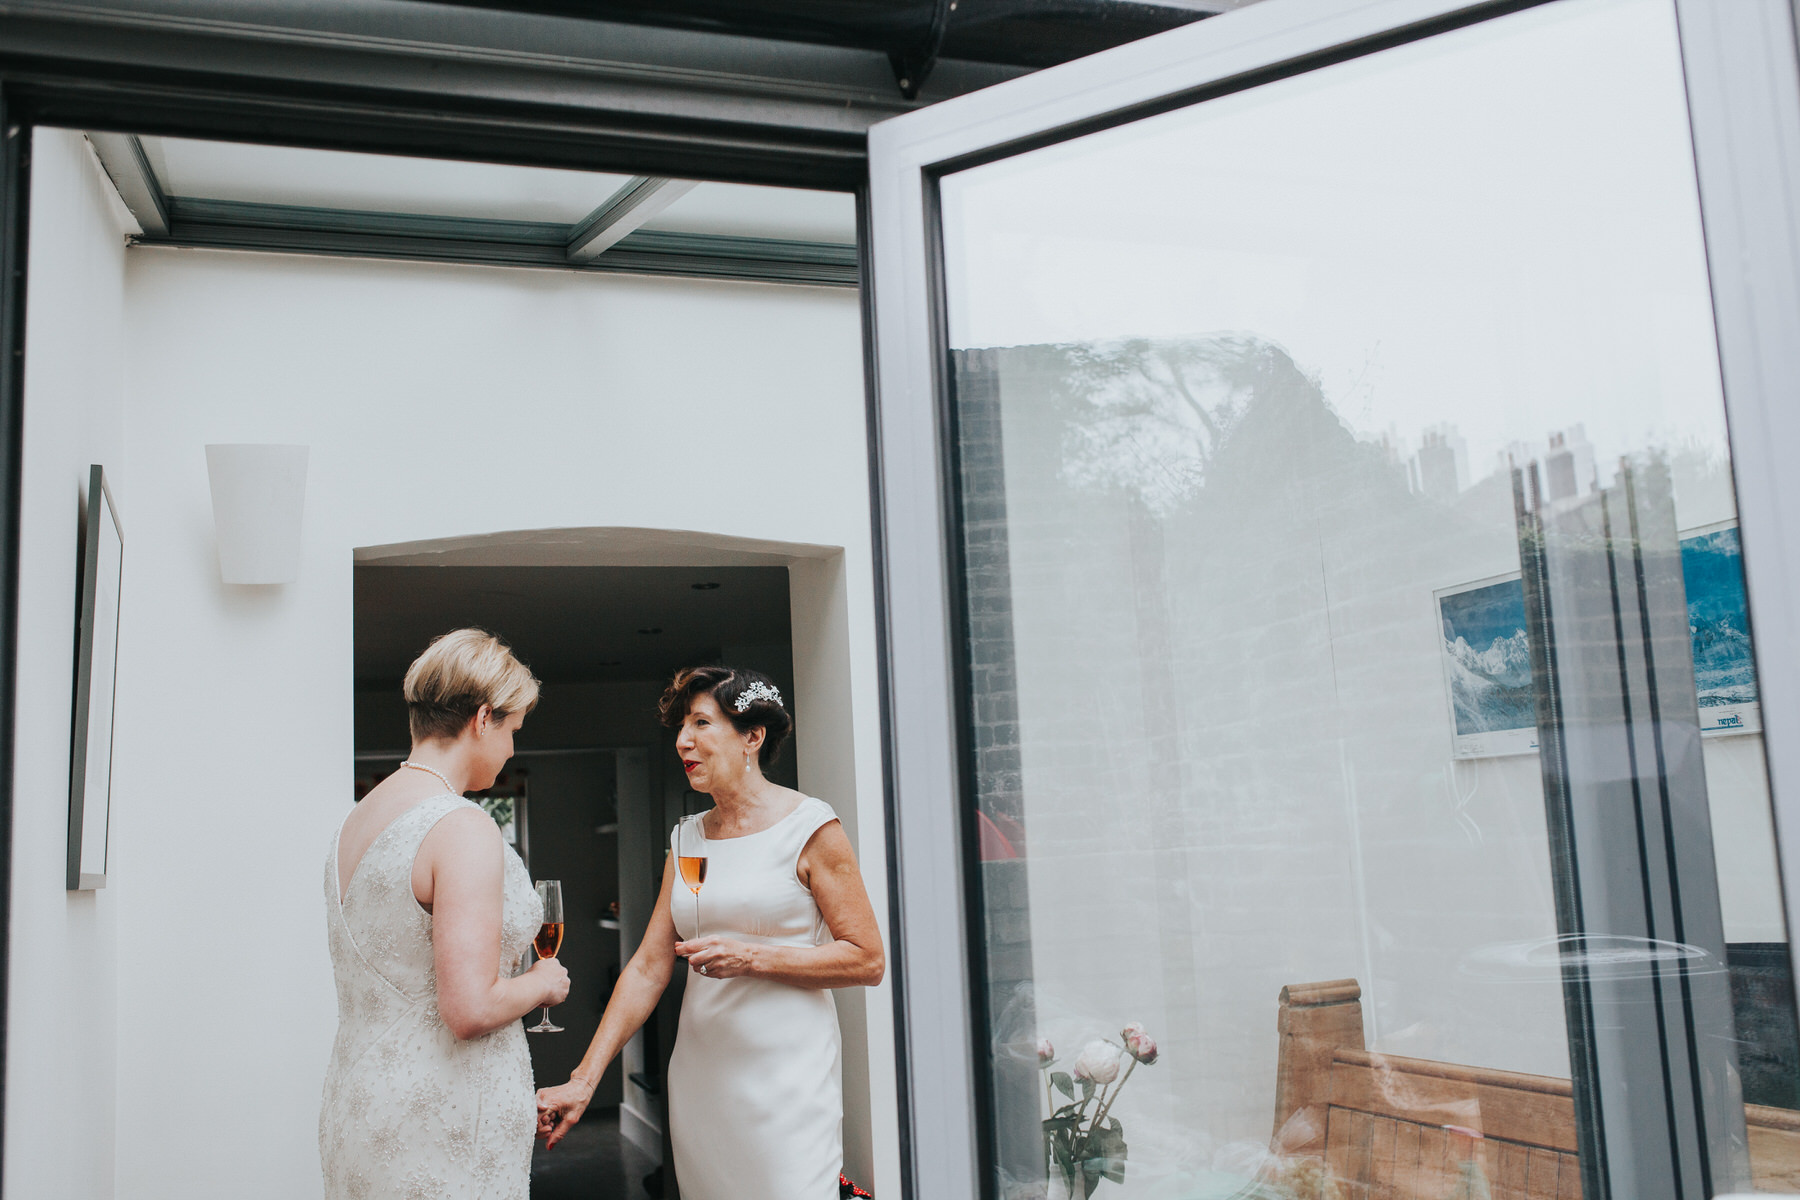 51 two brides before wedding ceremony London reportage photography.jpg